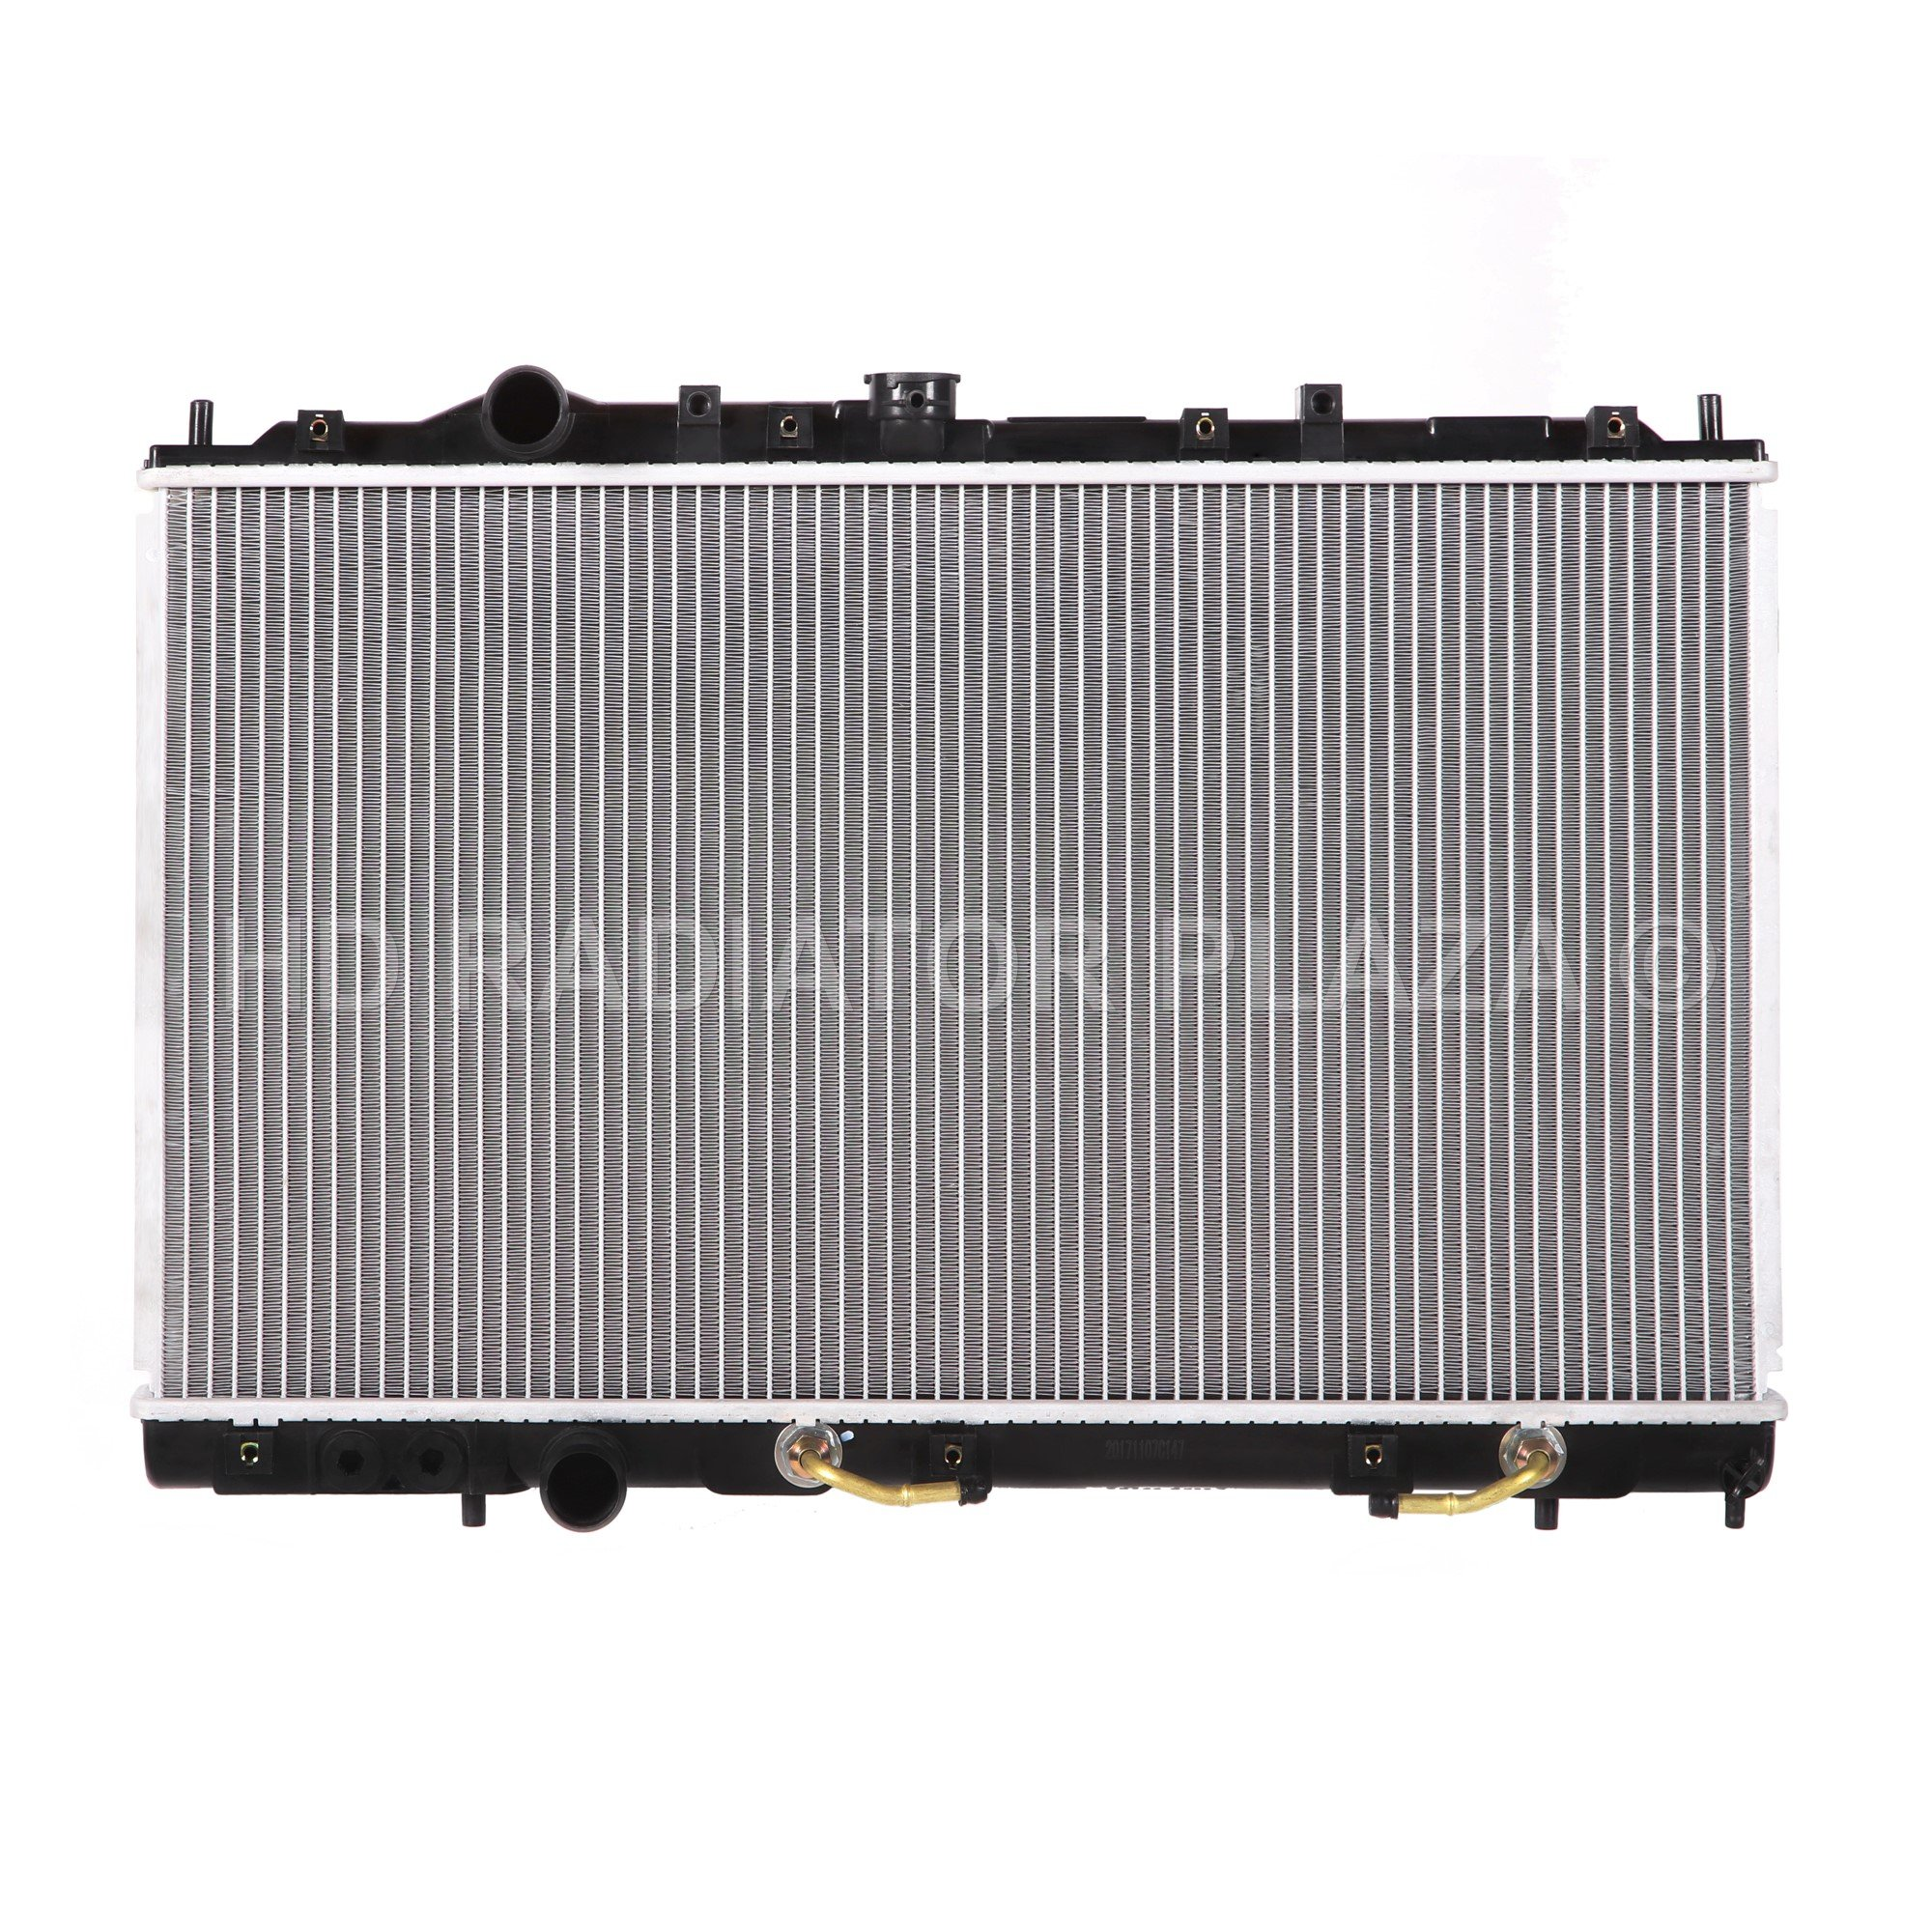 Radiator for 97-02 Mitsubishi Mirage, 1.5L l4